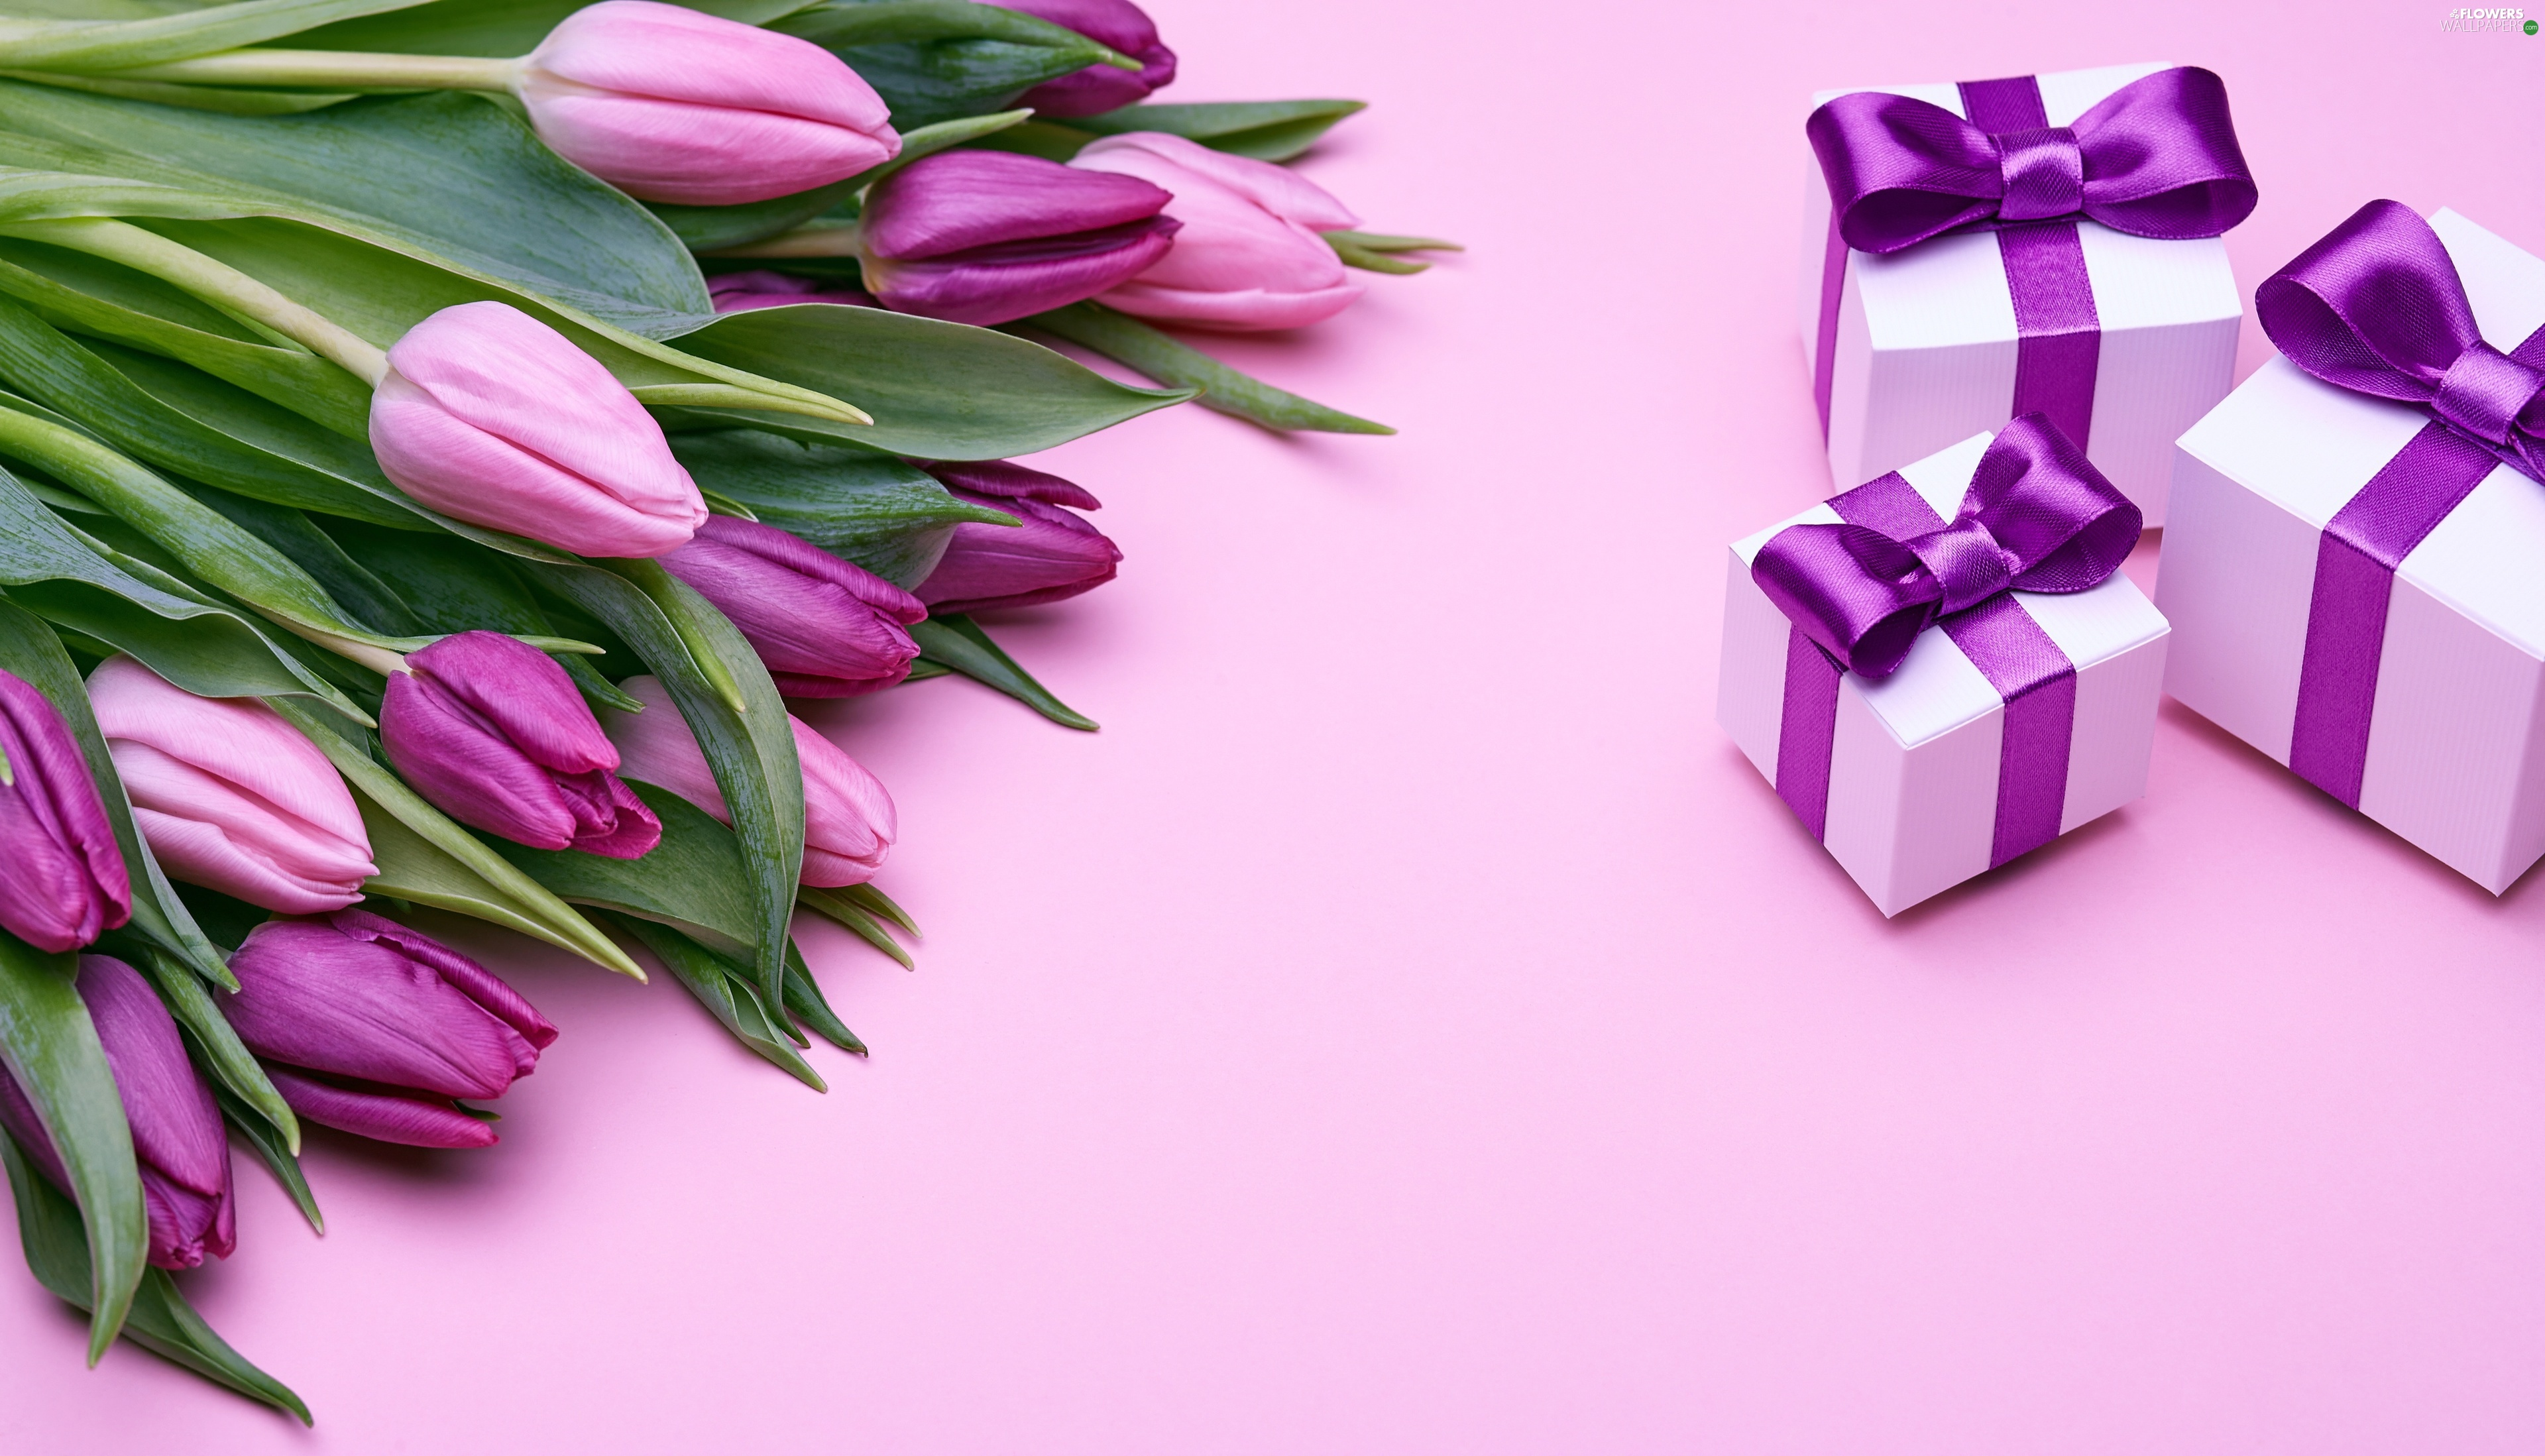 Tulips, gifts, purple